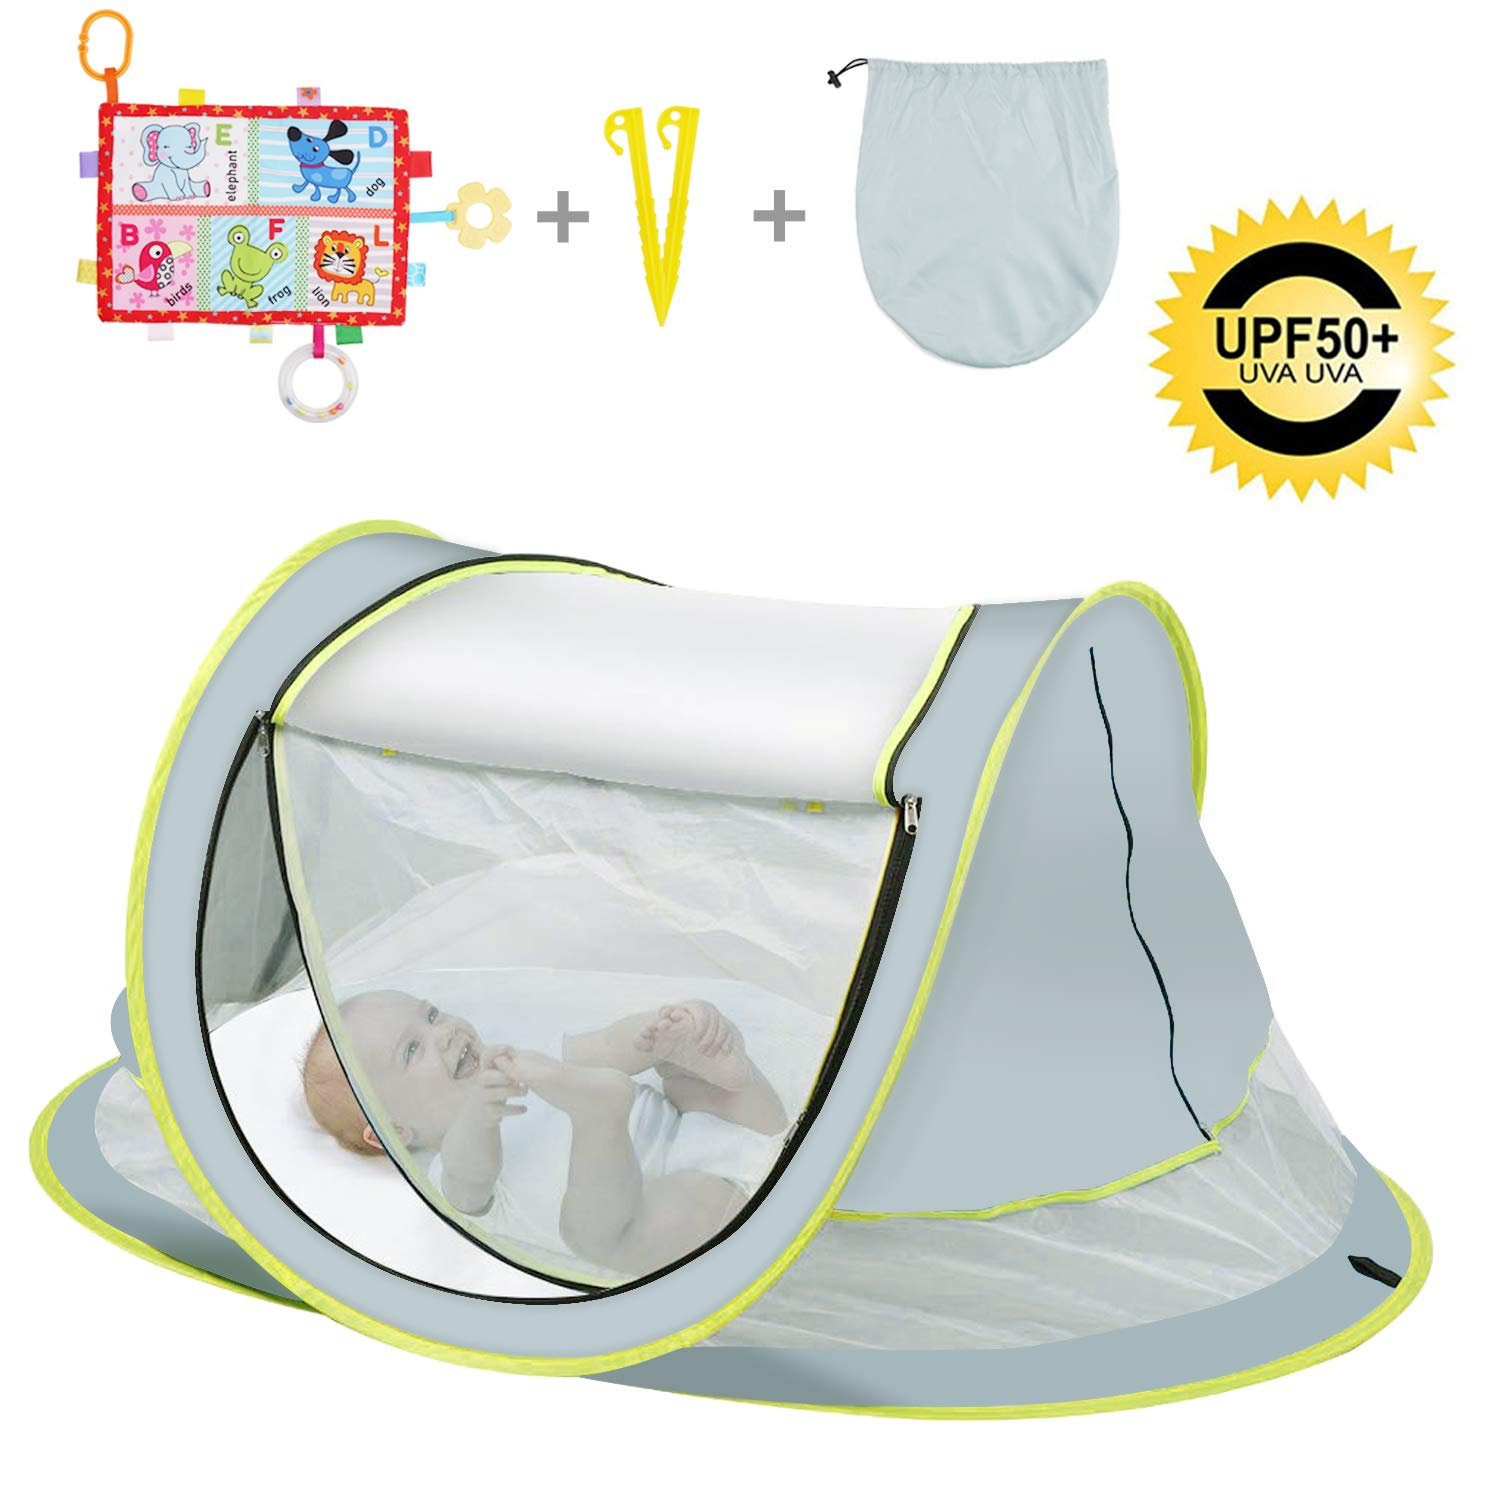 OBloved Baby Beach Tent, Large Portable Baby Travel Bed, UPF 50+ UV Protection Sun Shelters for Infant, Pop UpFolding Baby Travel Tent with Mosquito Net, Ultralight Sunshade with 2 Pegs by OBloved